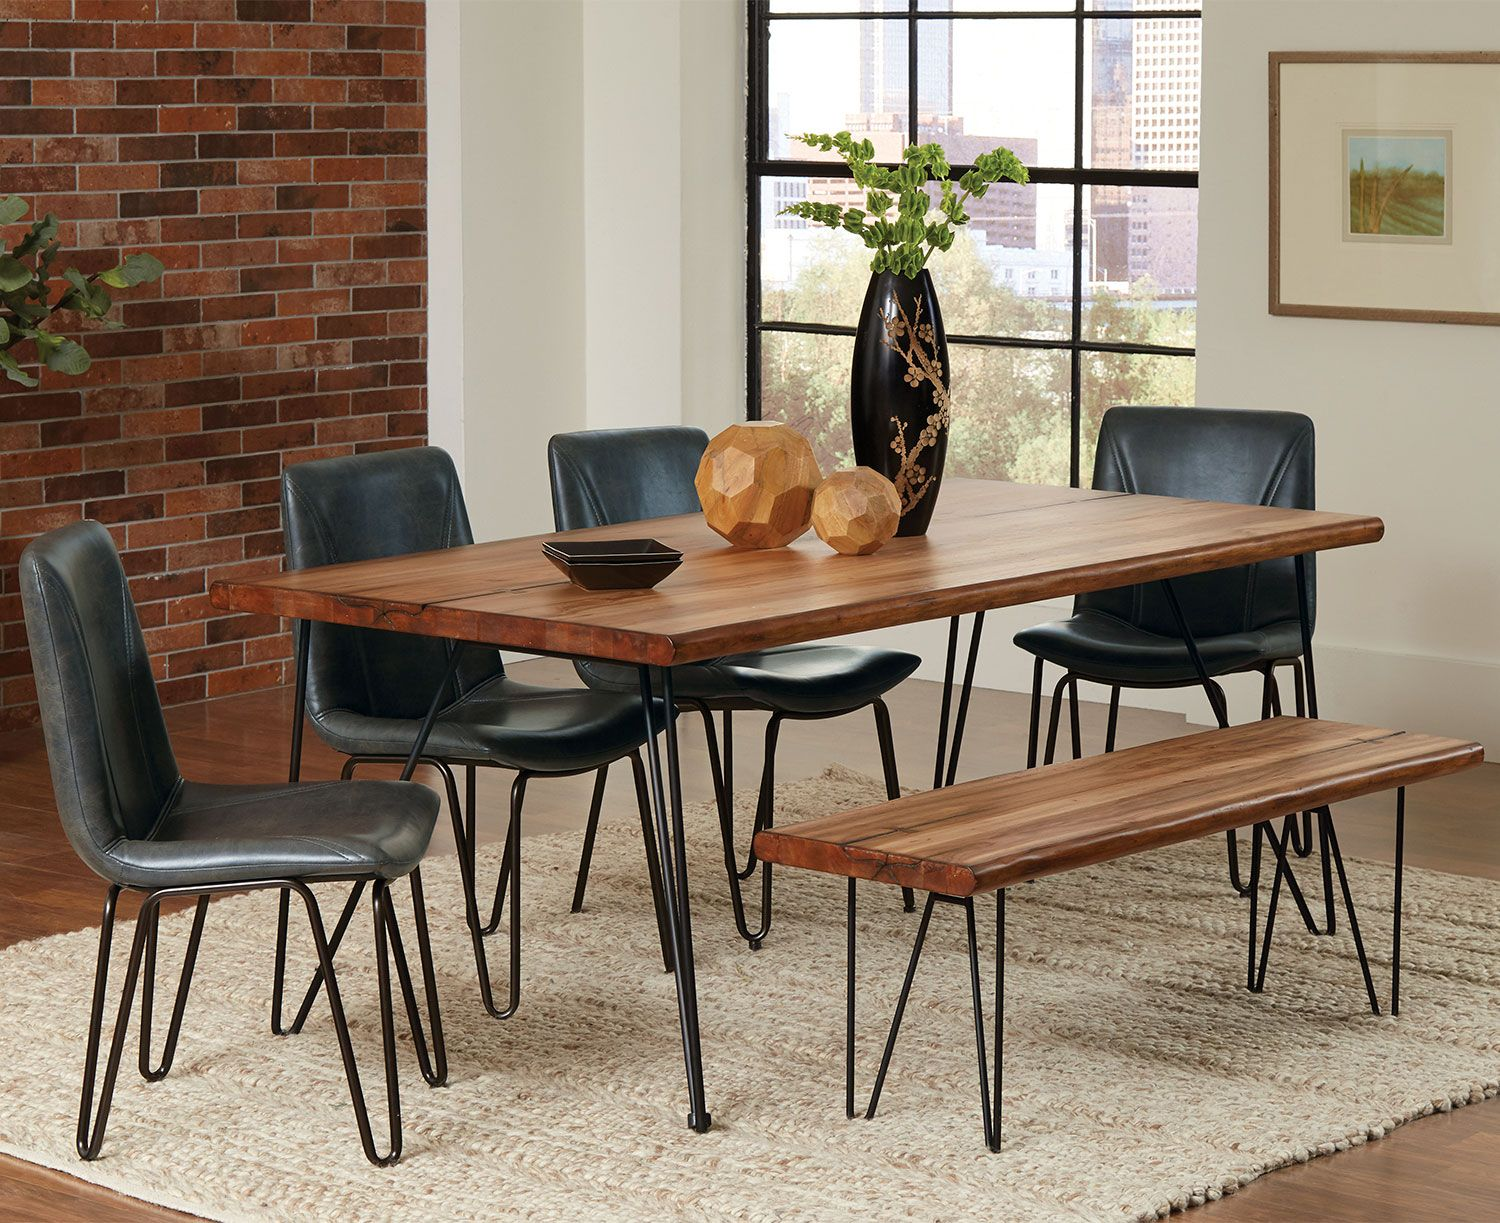 Modern Dining Table Chairs Underson Dining Table Industrial And Modern Farmhouse Style Table